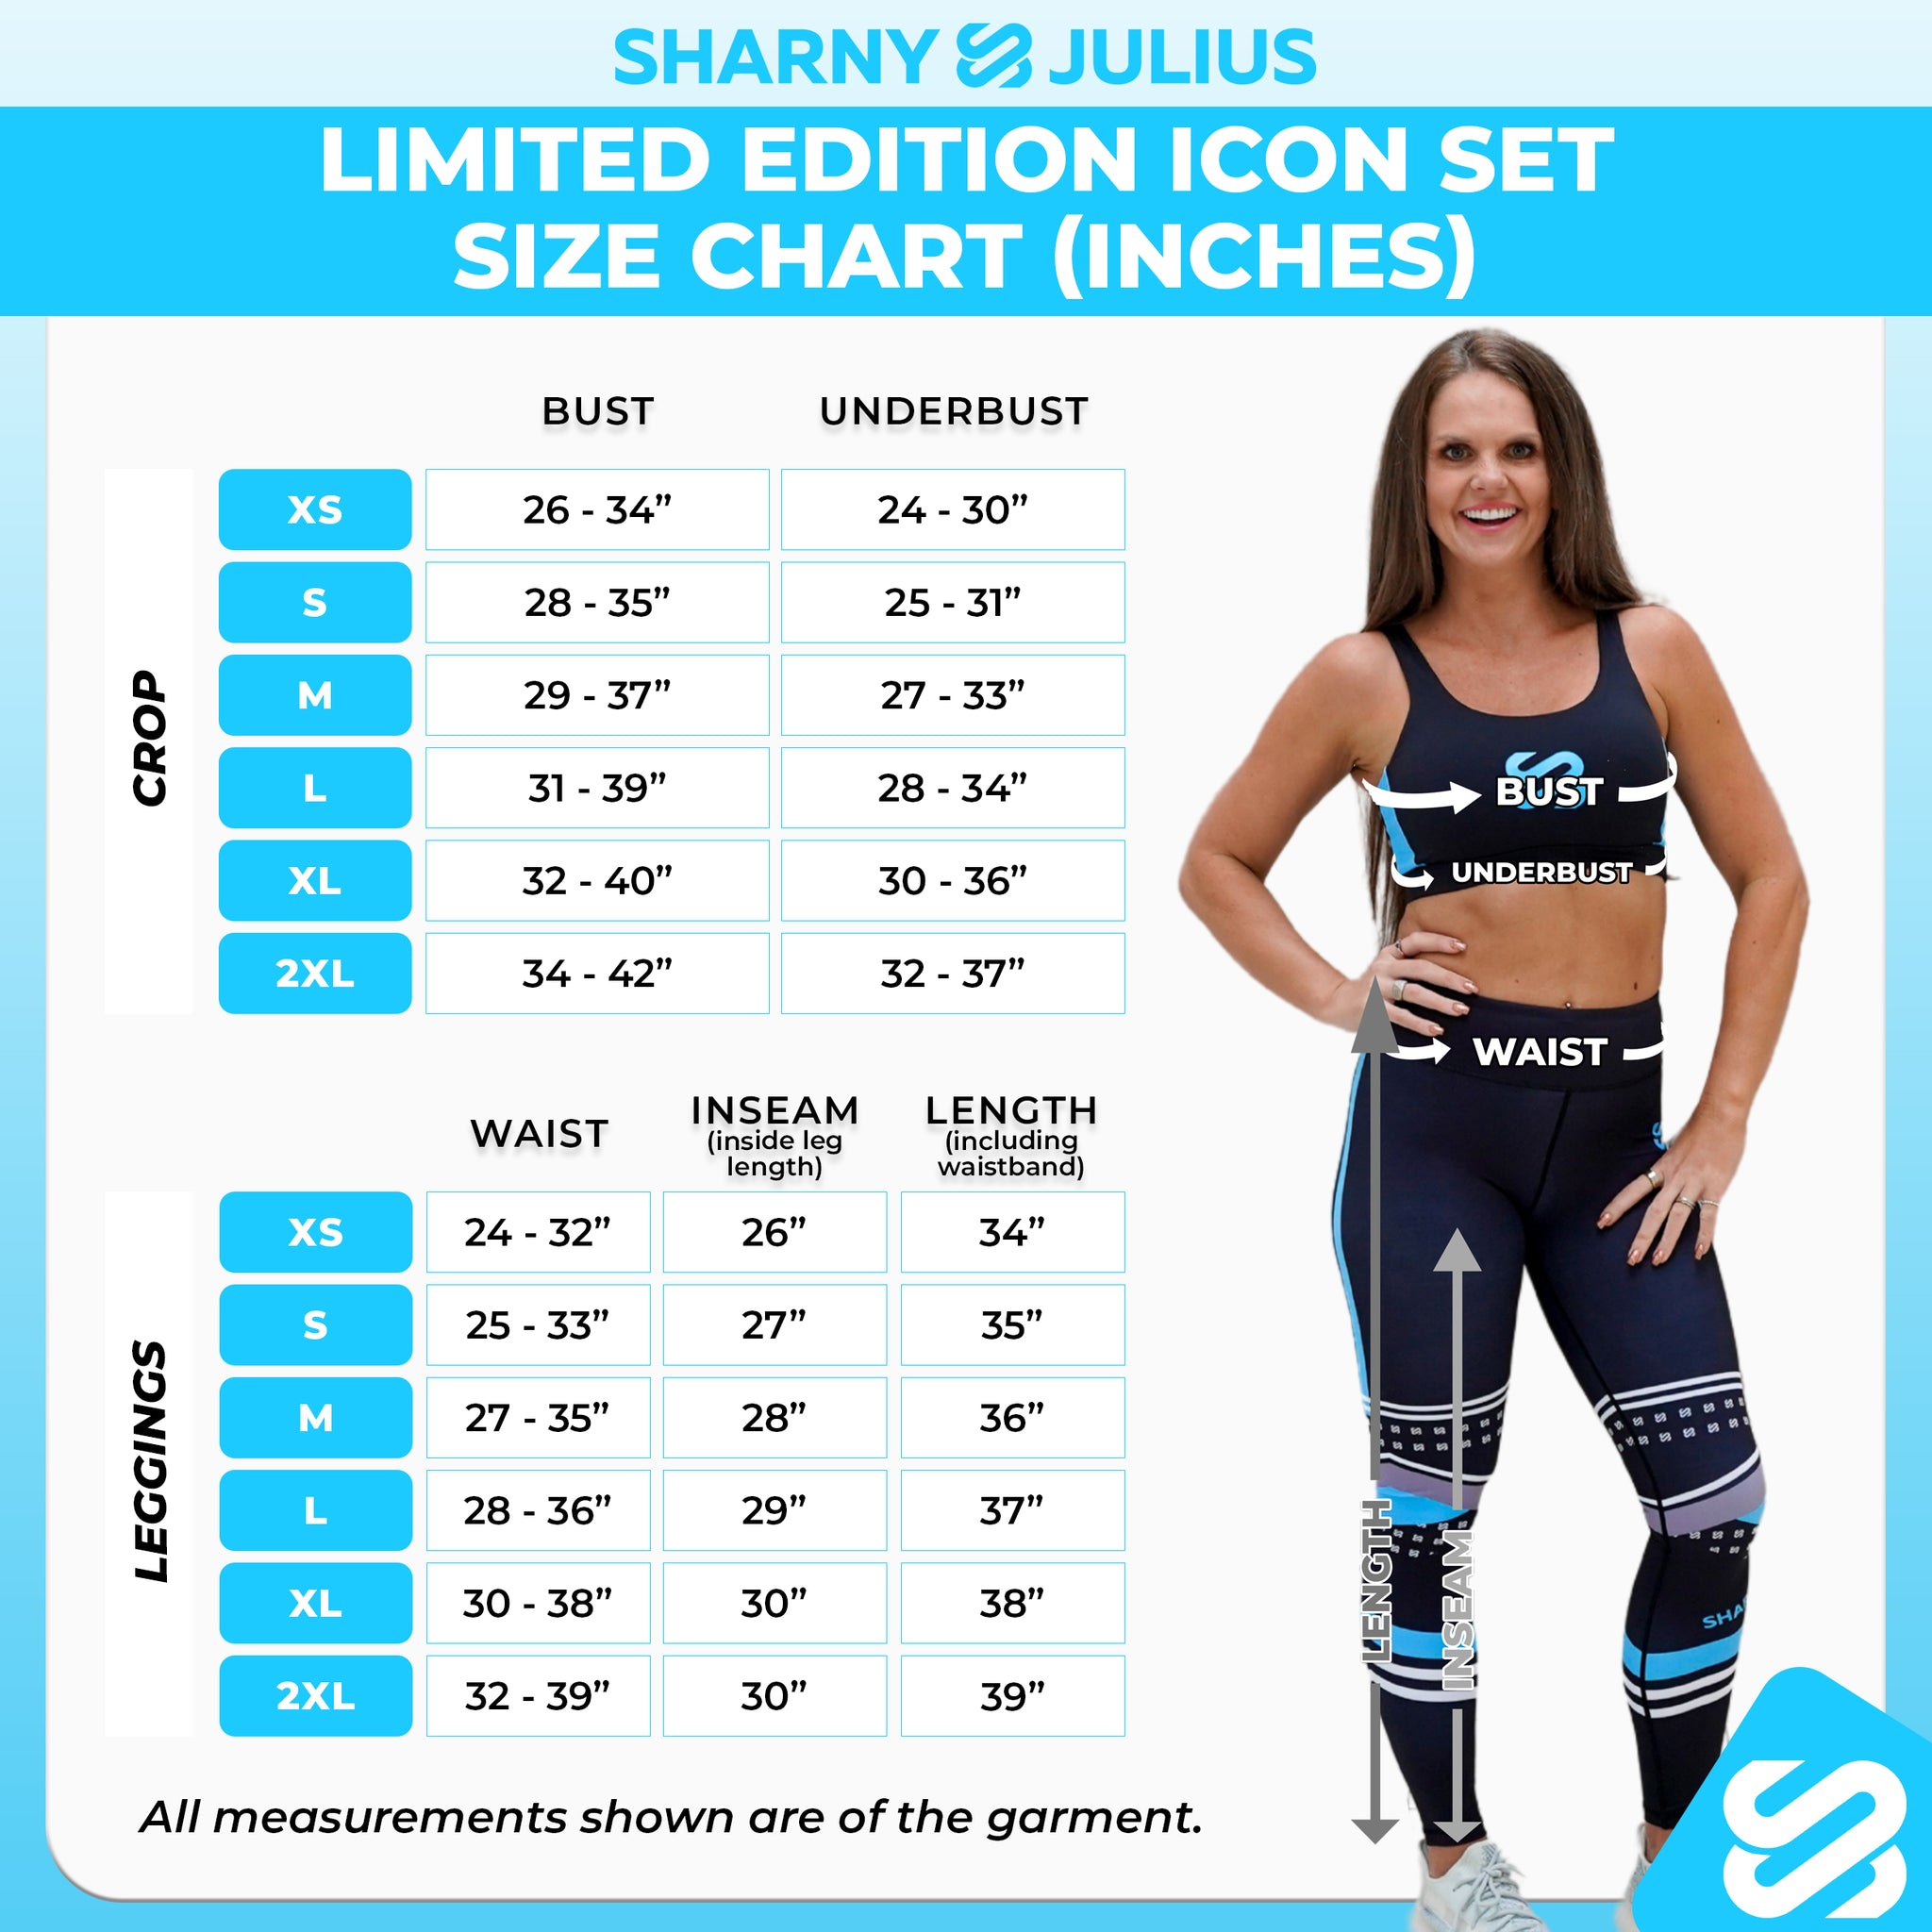 icon set size chart inches